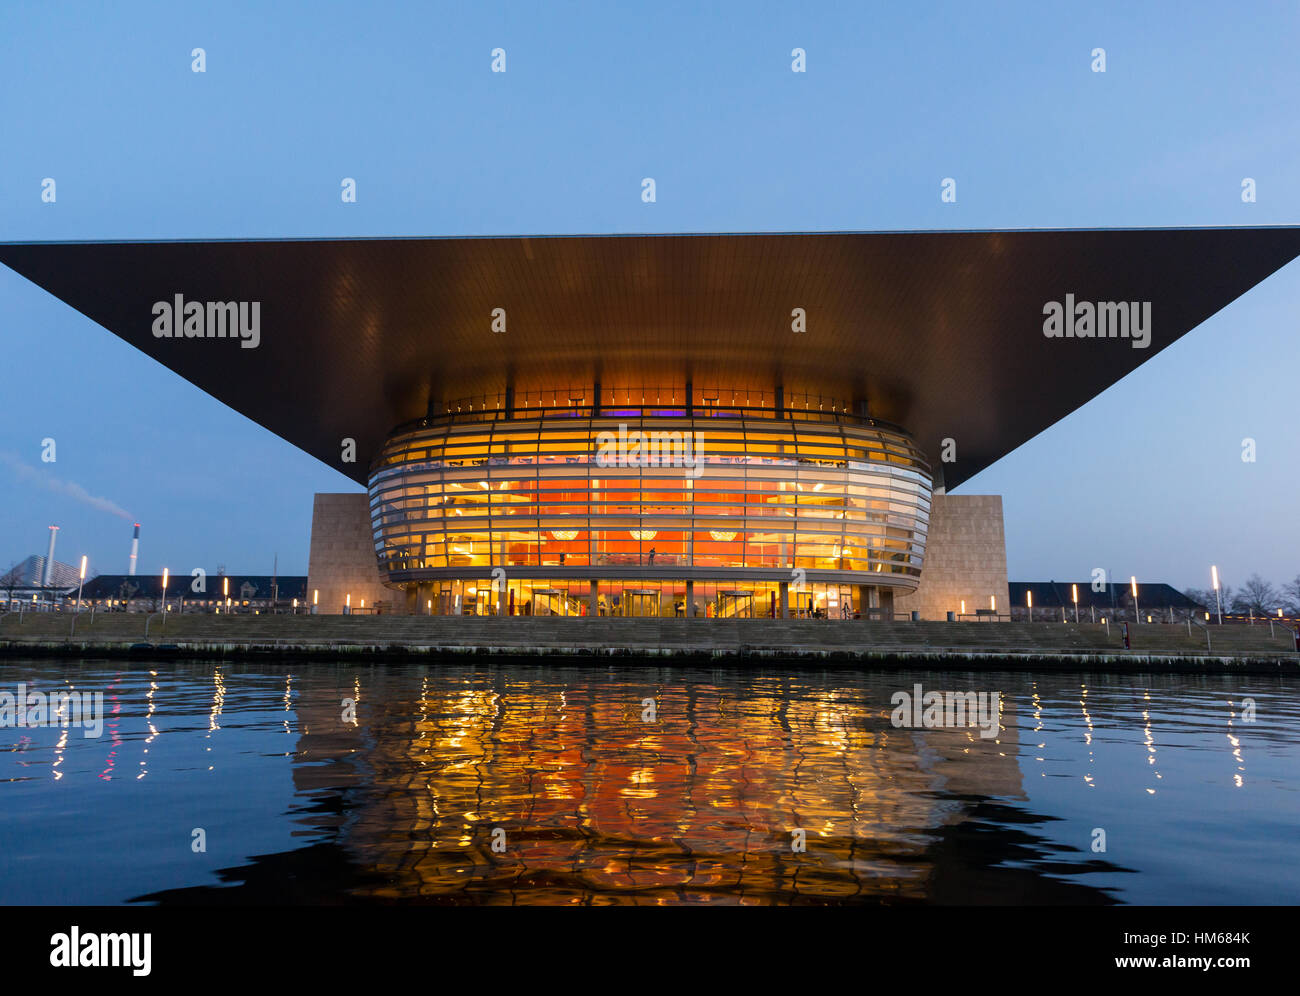 The Opera House at night, Copenhagen, Denmark - Stock Image